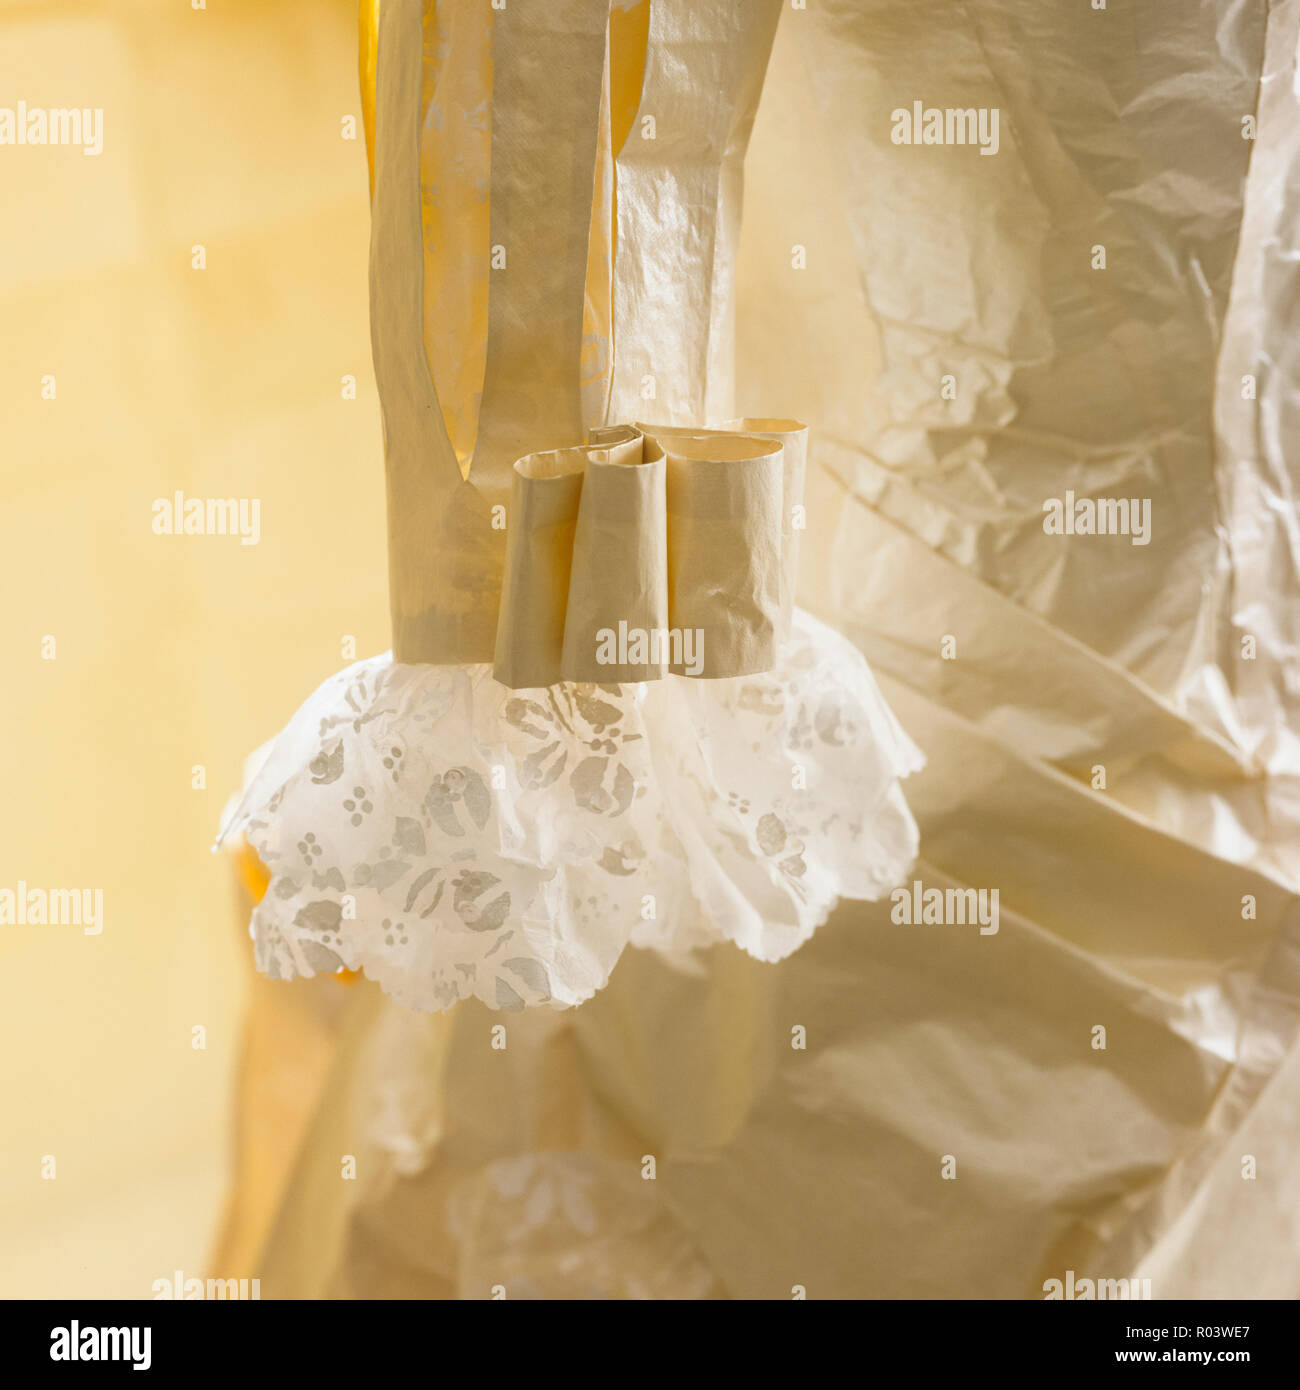 Paper sleeve by Isabelle de Borchgrave - Stock Image